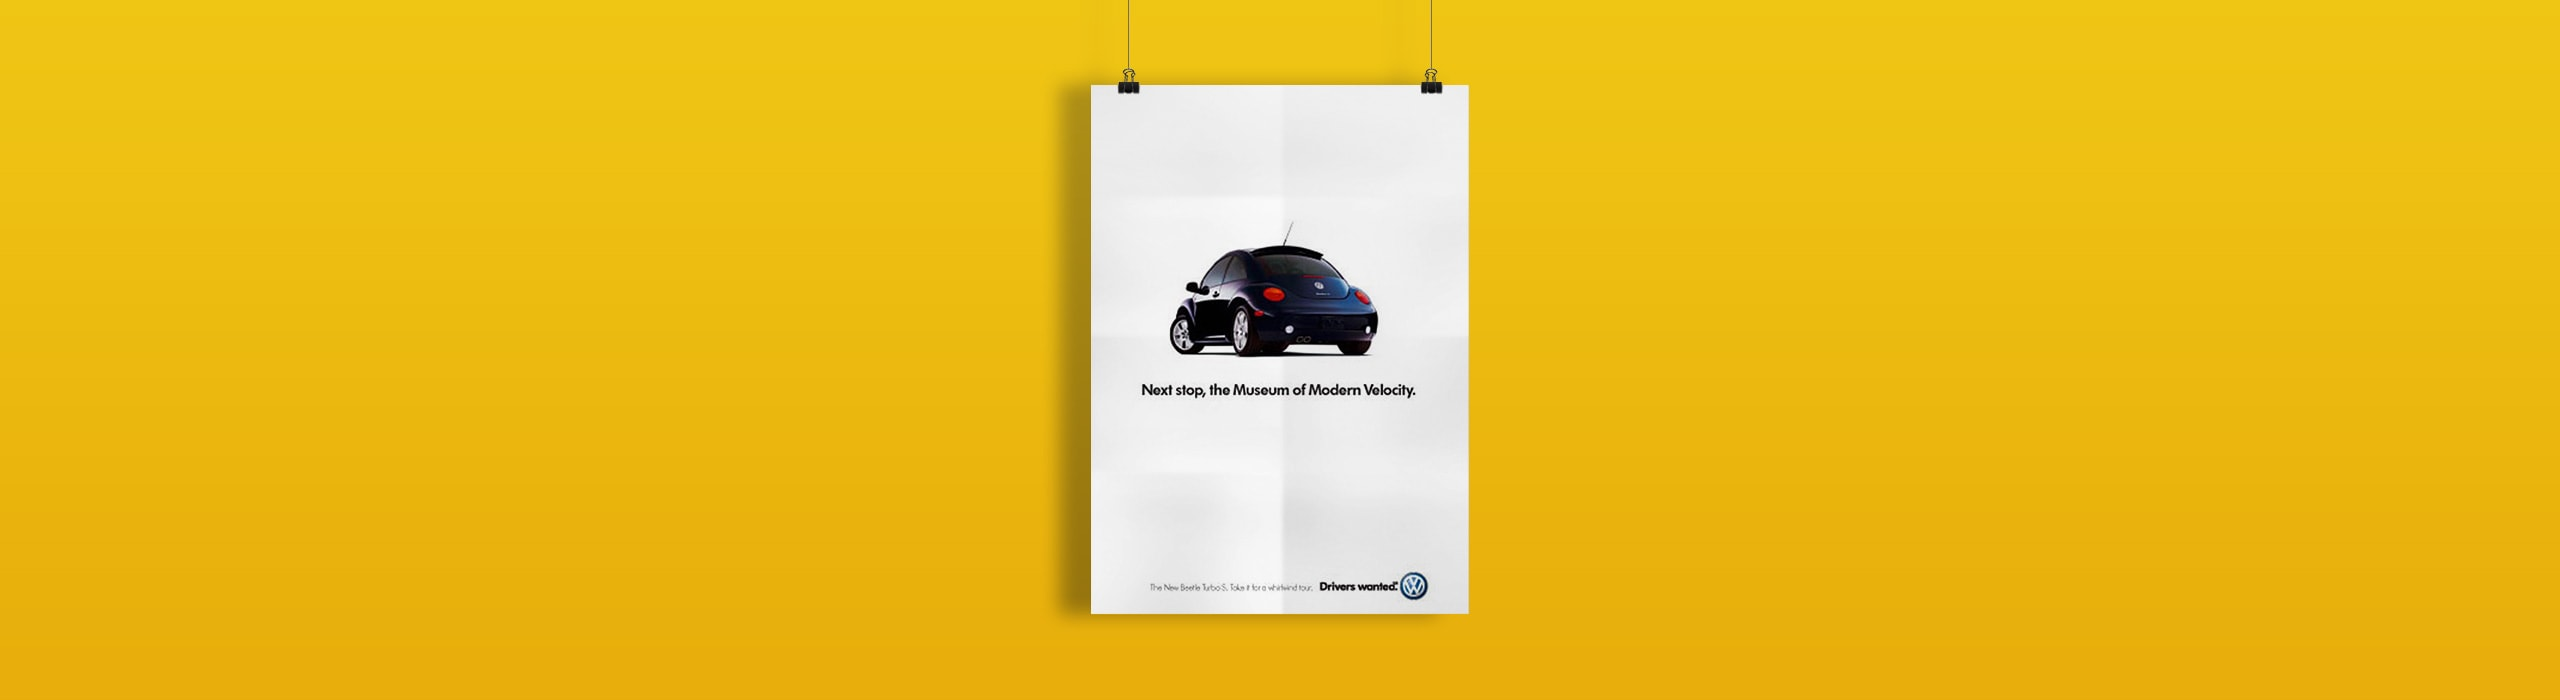 Volkswagen - natie-volkswagen-billboard-02 - Natie Branding Agency